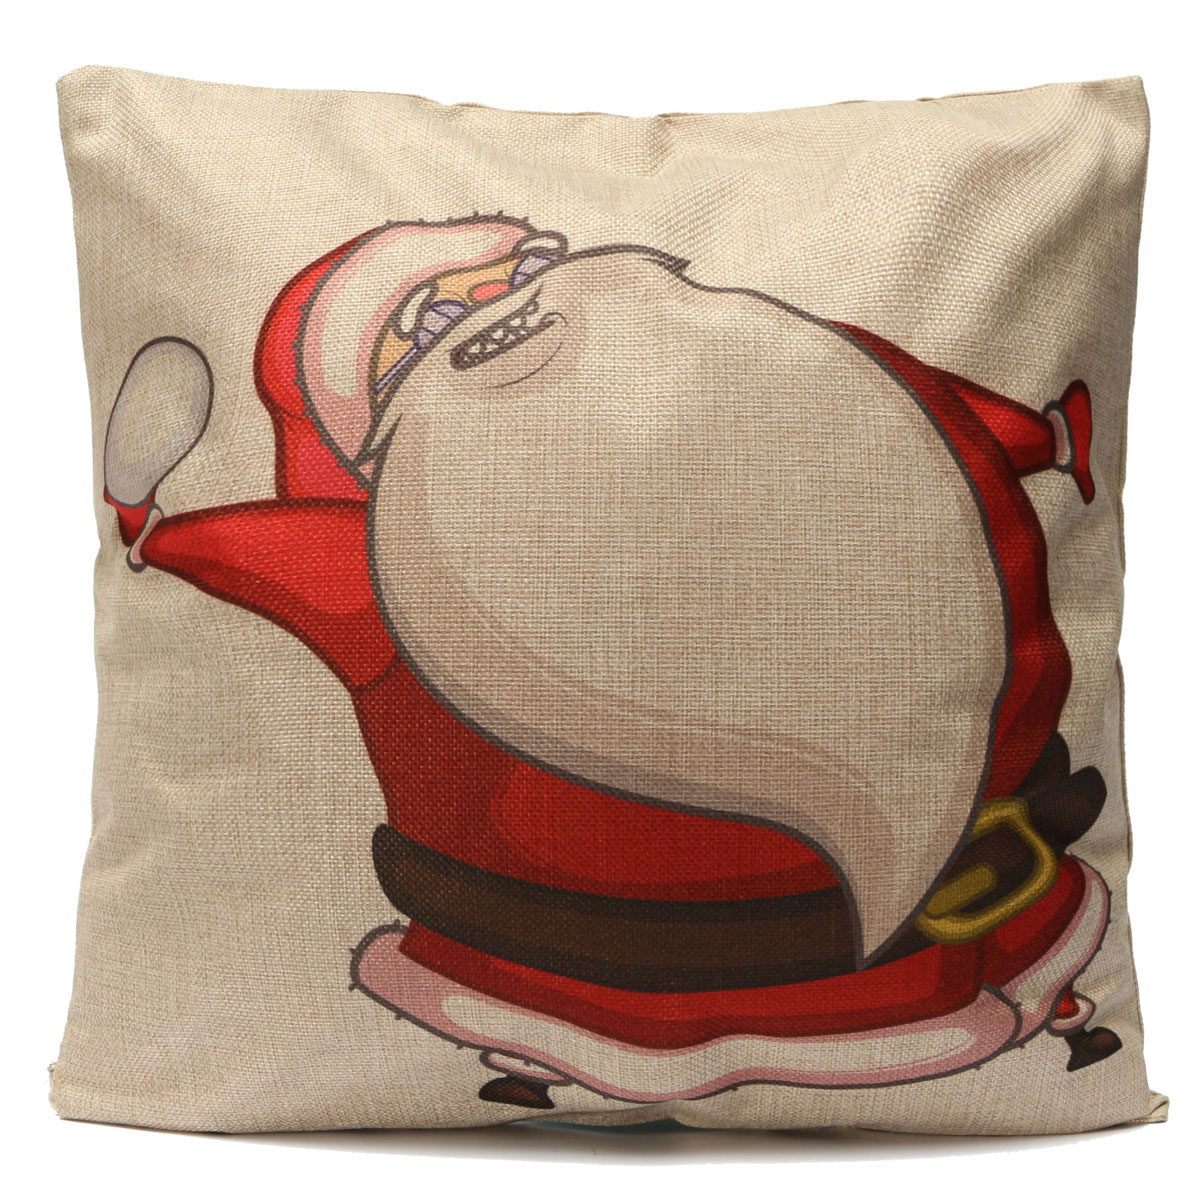 Christmas Decorative Pillow Cases : Christmas Cotton Linen Throw Pillow Case Xmas Cushion Cover Home Car Decorative #04 - Intl ...